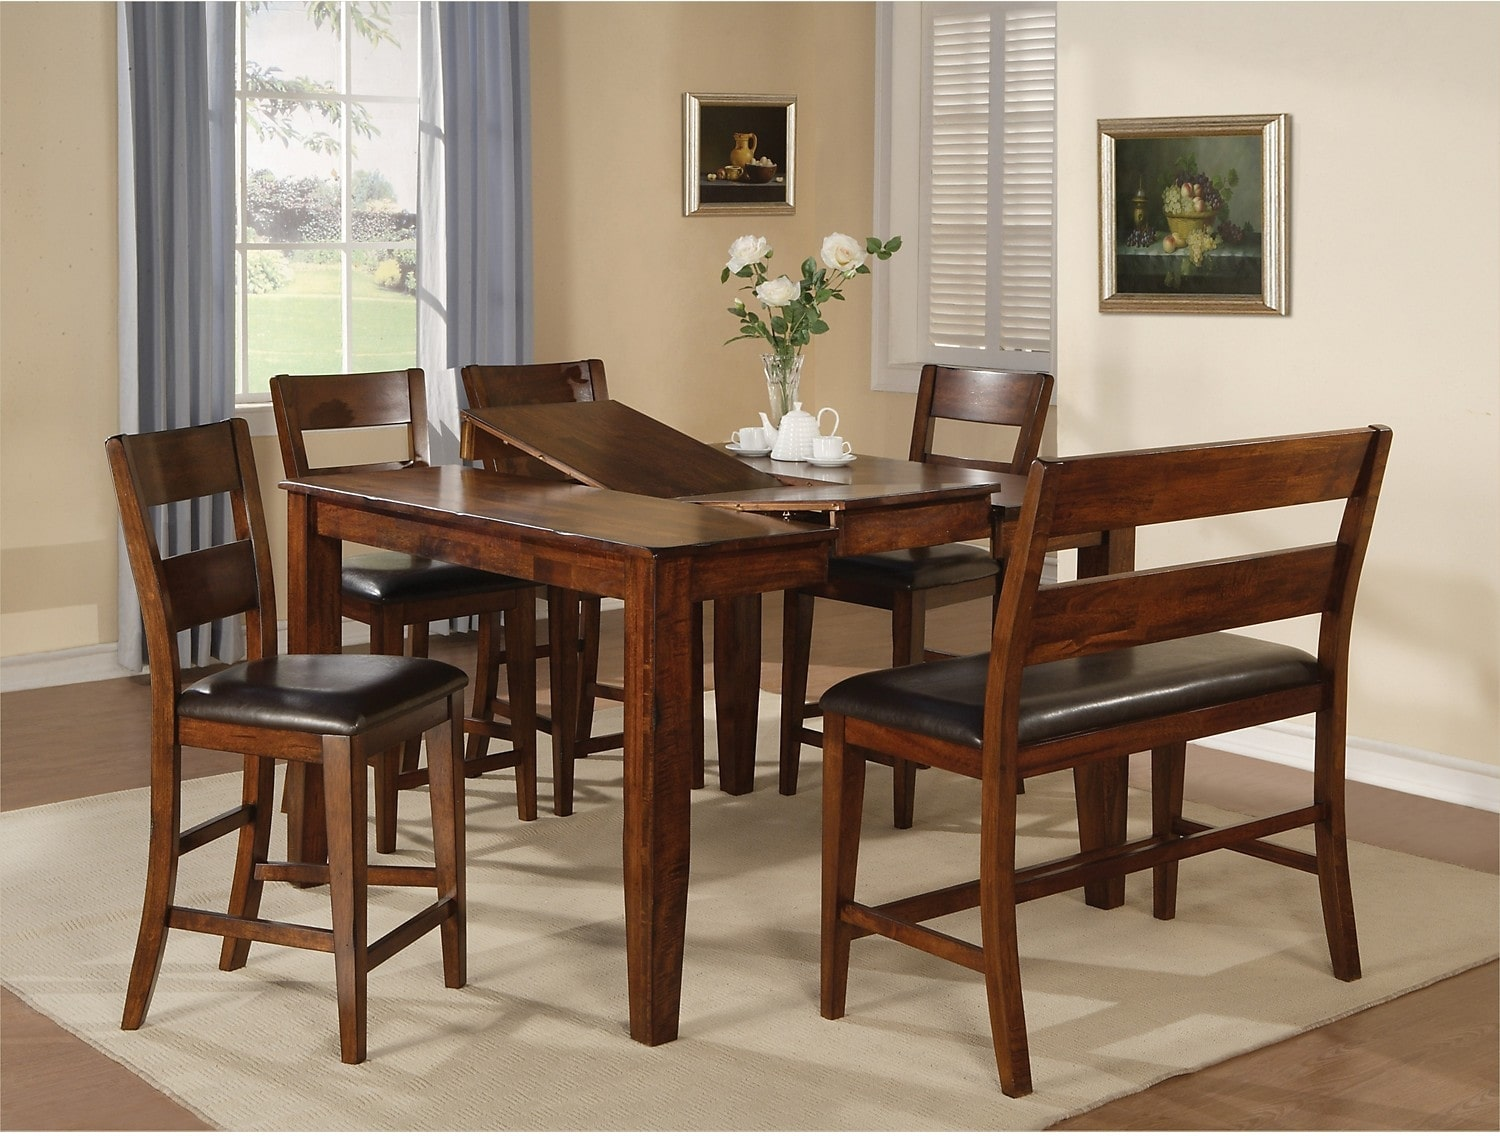 Dining Table Light Height: Dakota Light 6-Piece Pub-Height Dining Package